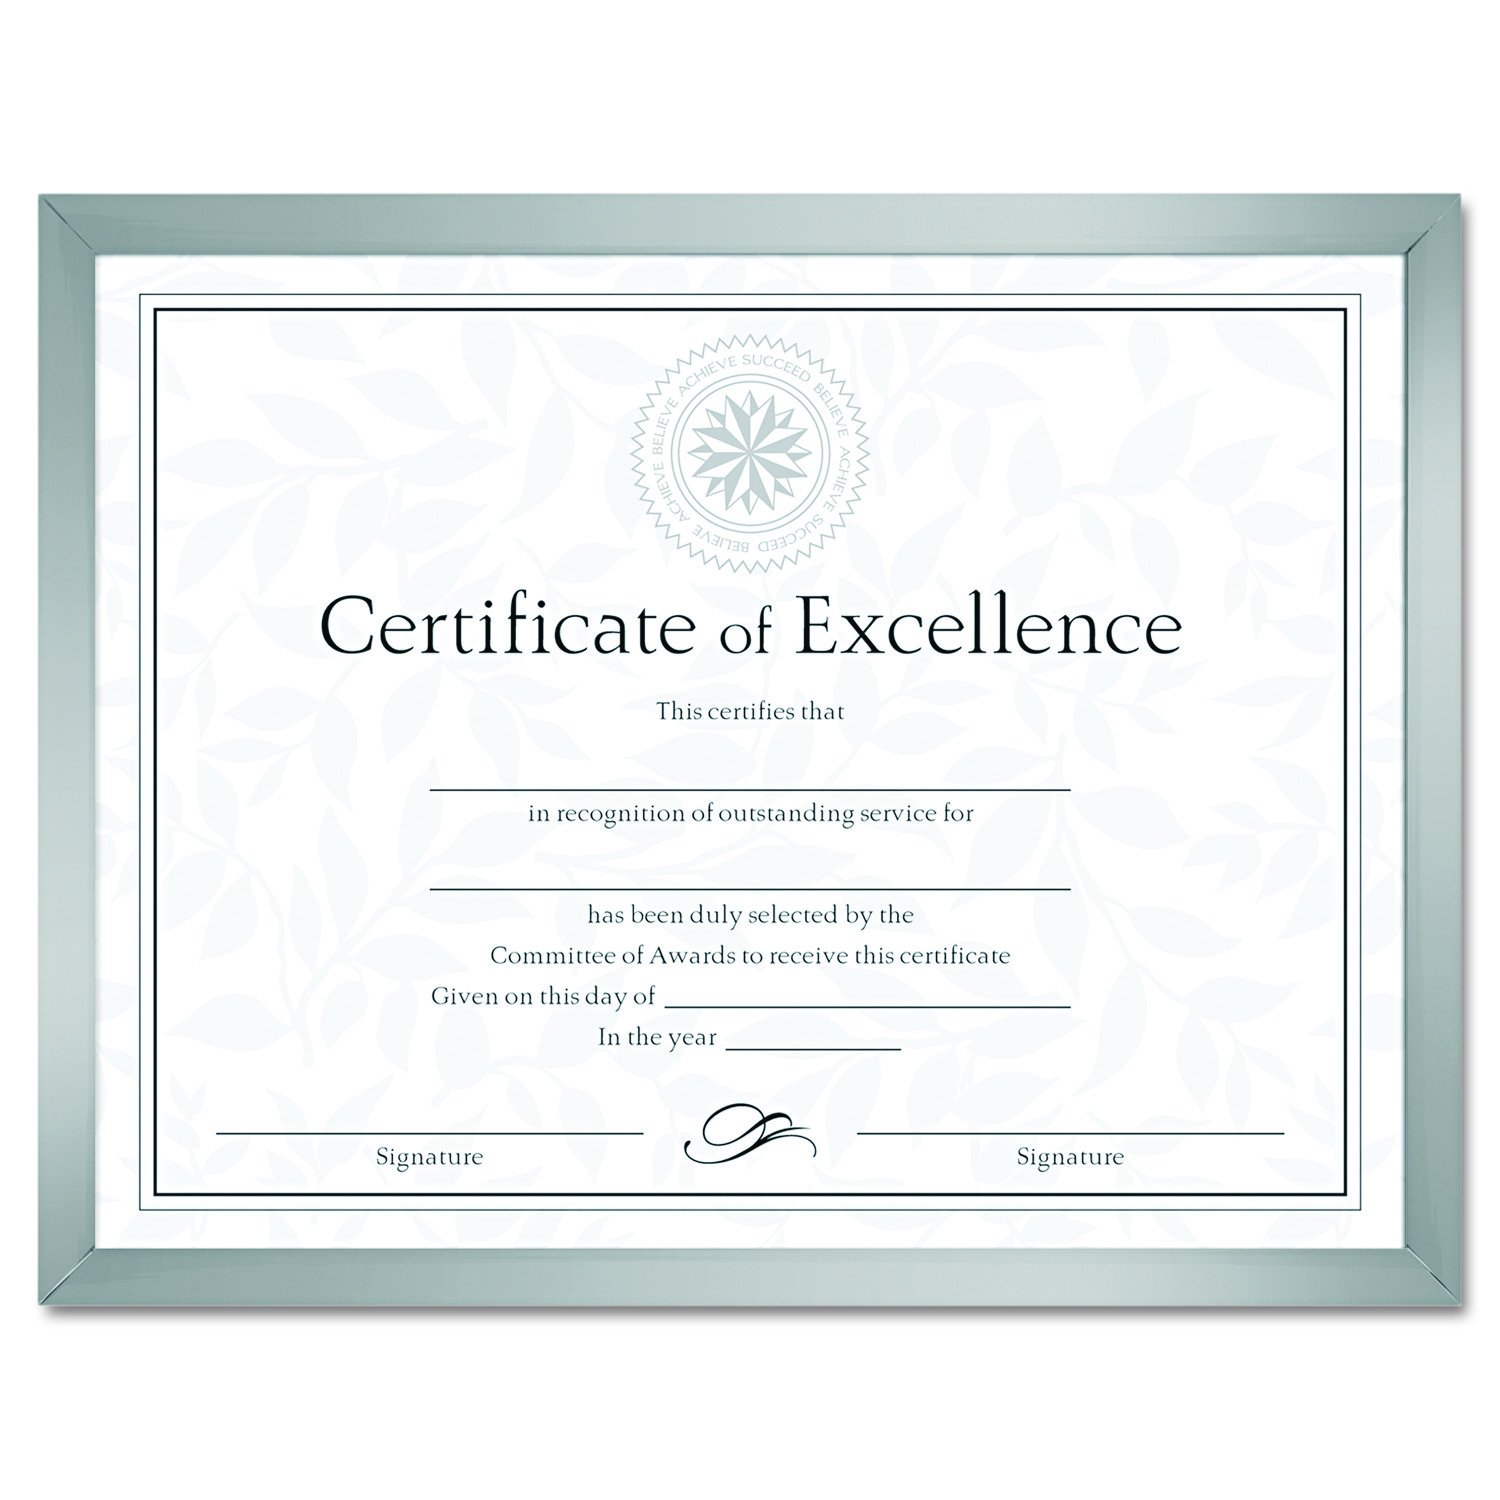 DAX N17002N Value U-Channel Document Frame with Certificates, 8-1/2 x 11 Inches, Silver DOBA-DAXN17002N